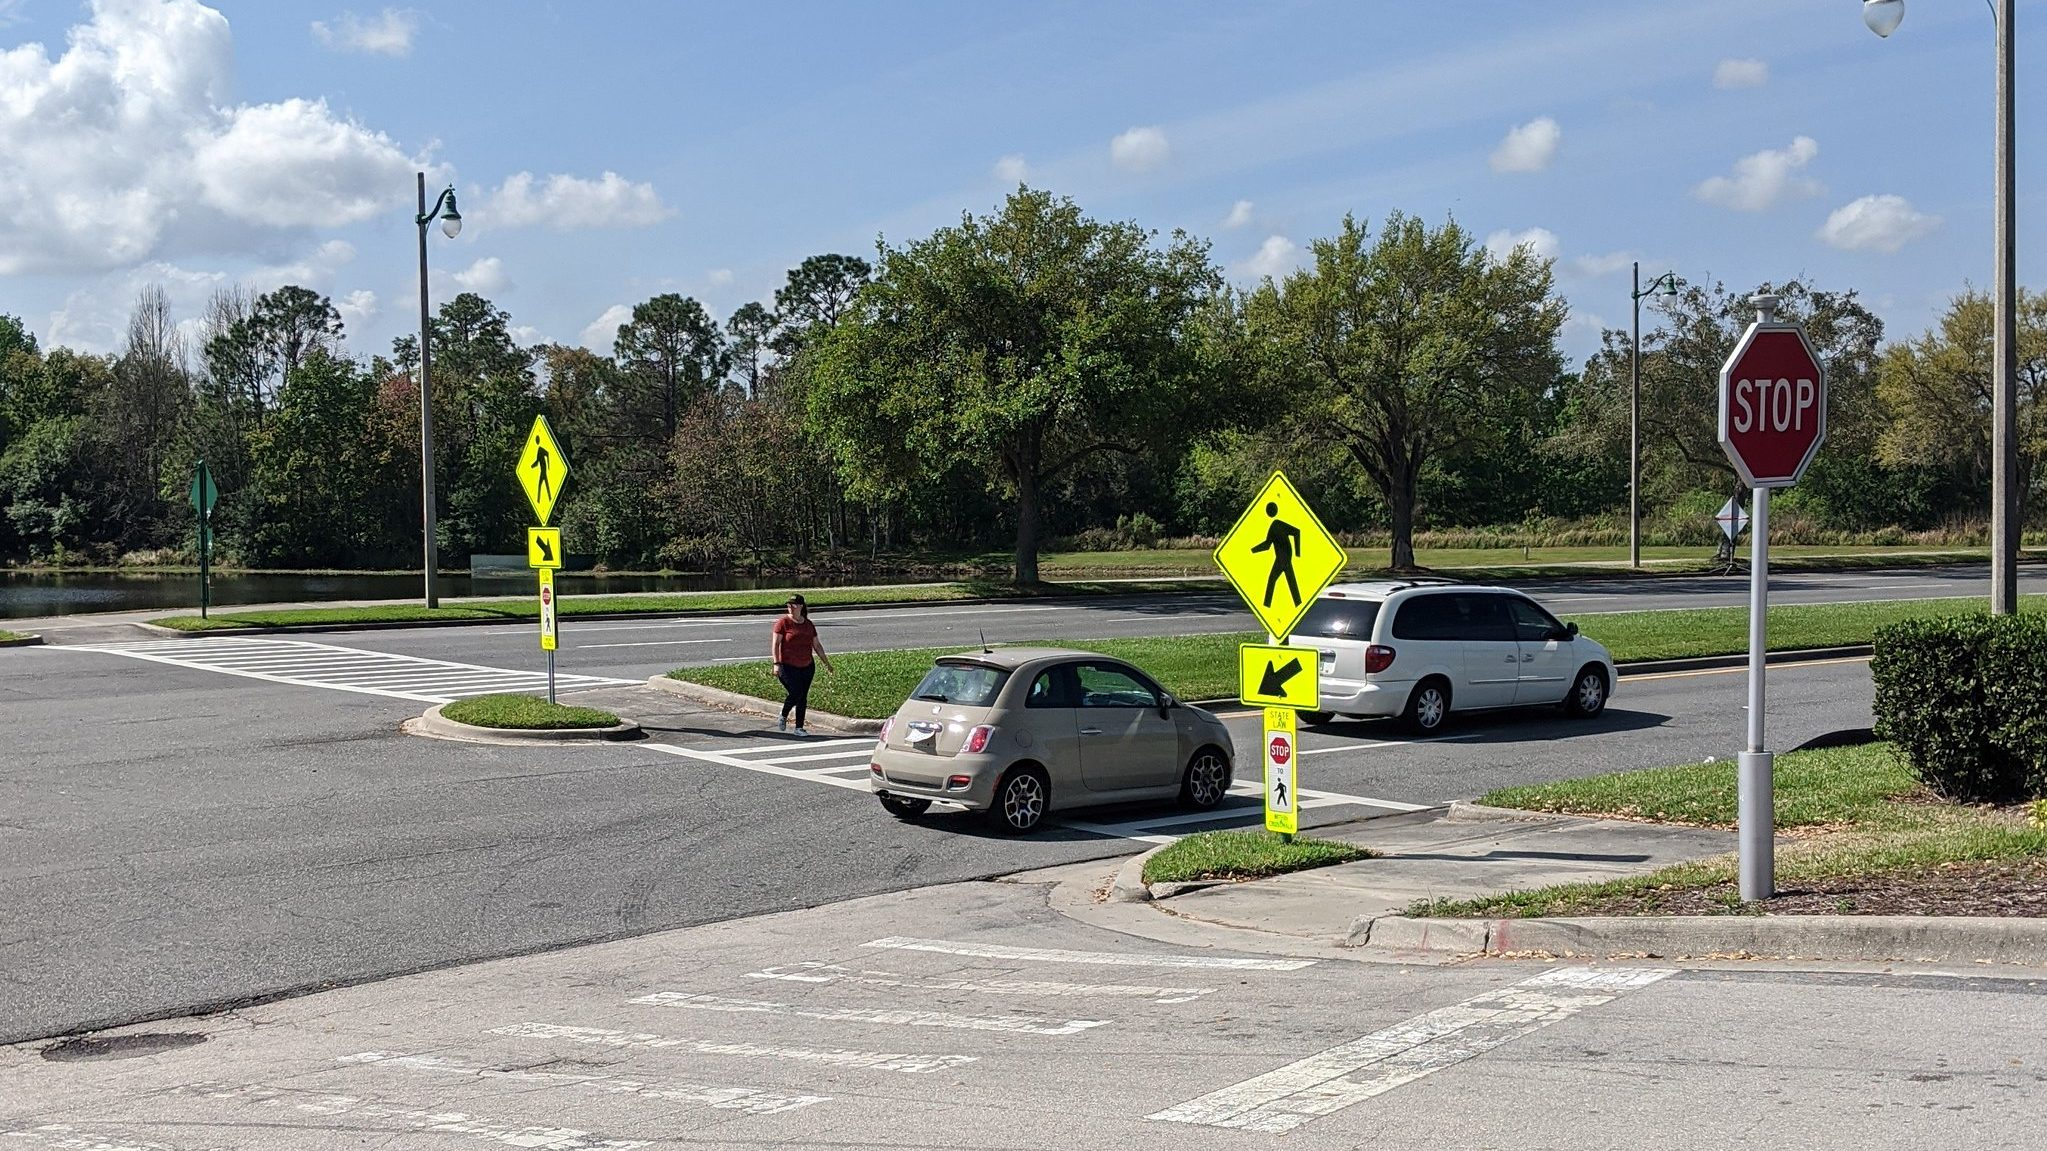 Smart Growth America Recognizes Edgewater Drive As Model For Complete Streets